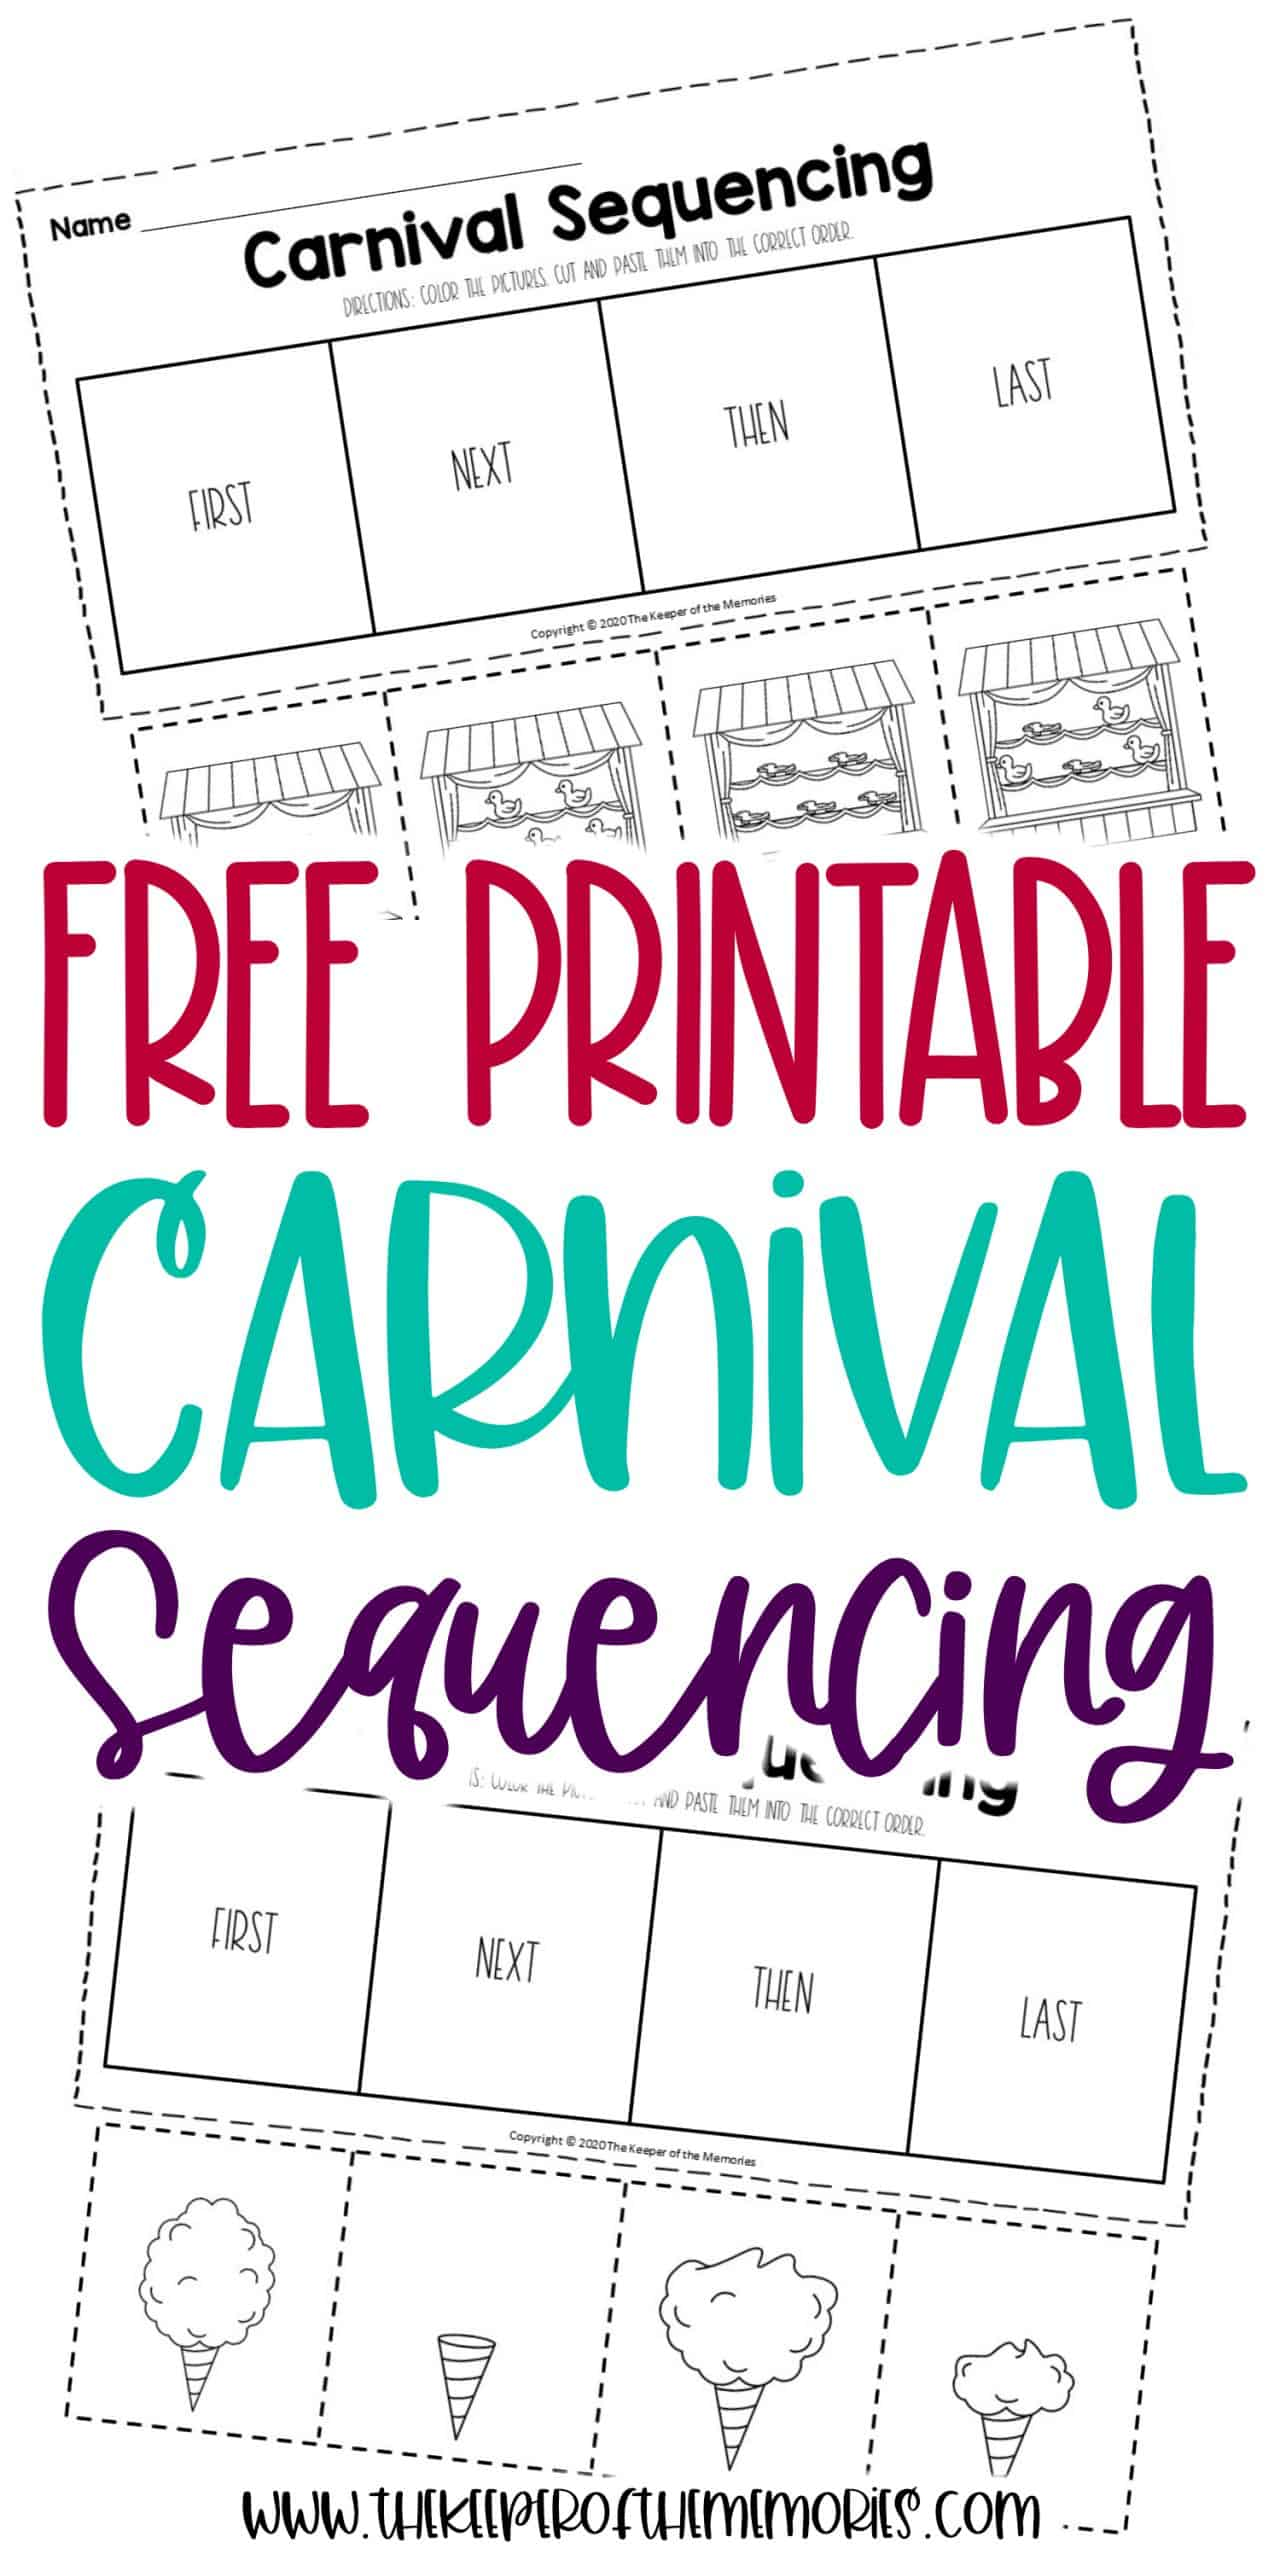 Free Printable Carnival Sequencing Events Worksheets